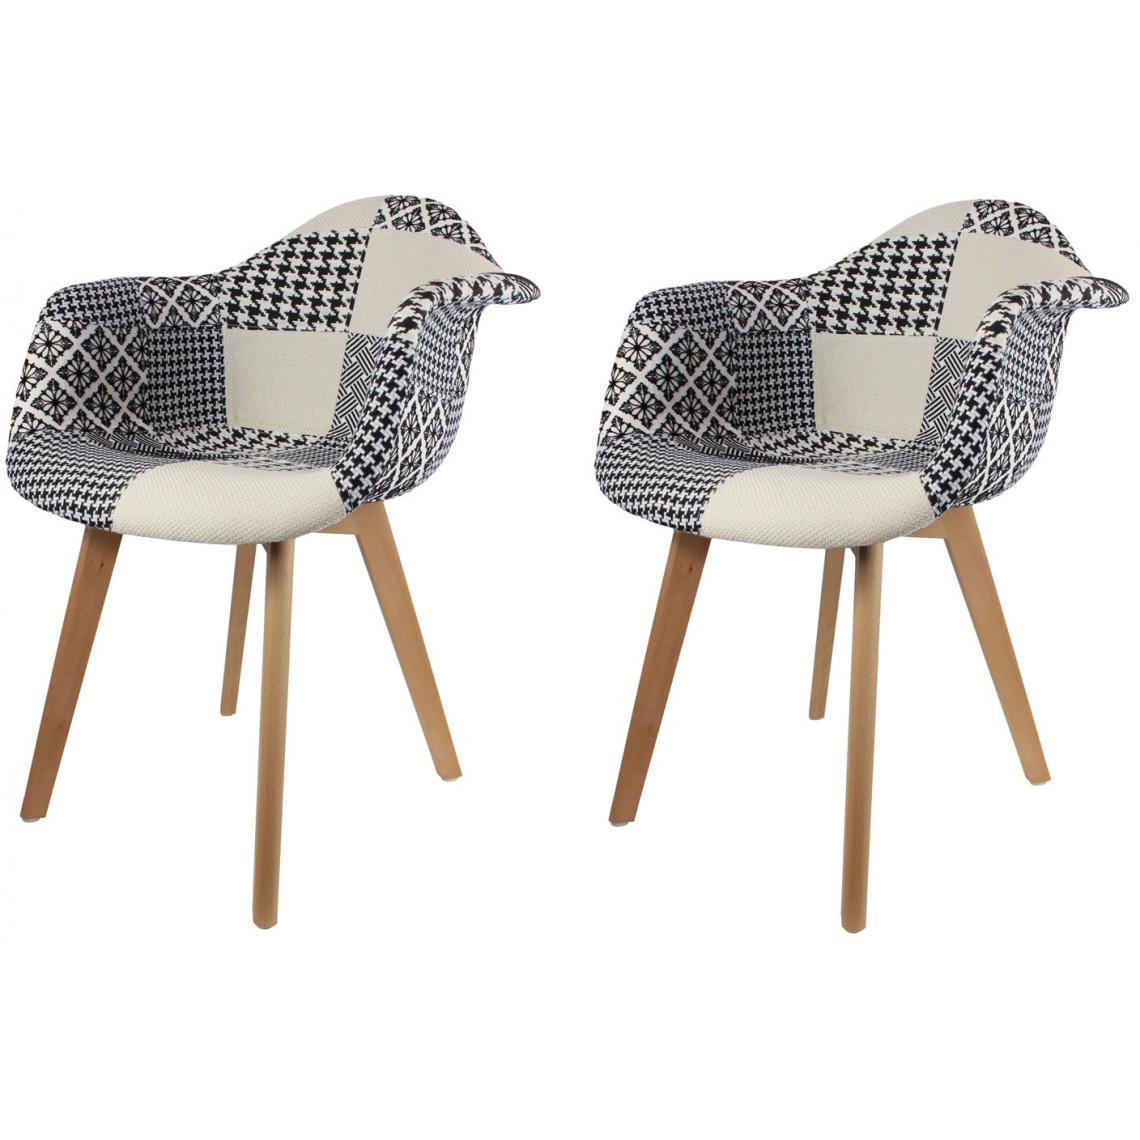 Fauteuils Scandinaves Patchwork Lot De 2 Chaises Scandinaves Avec Accoudoir Patchwork Bicolores